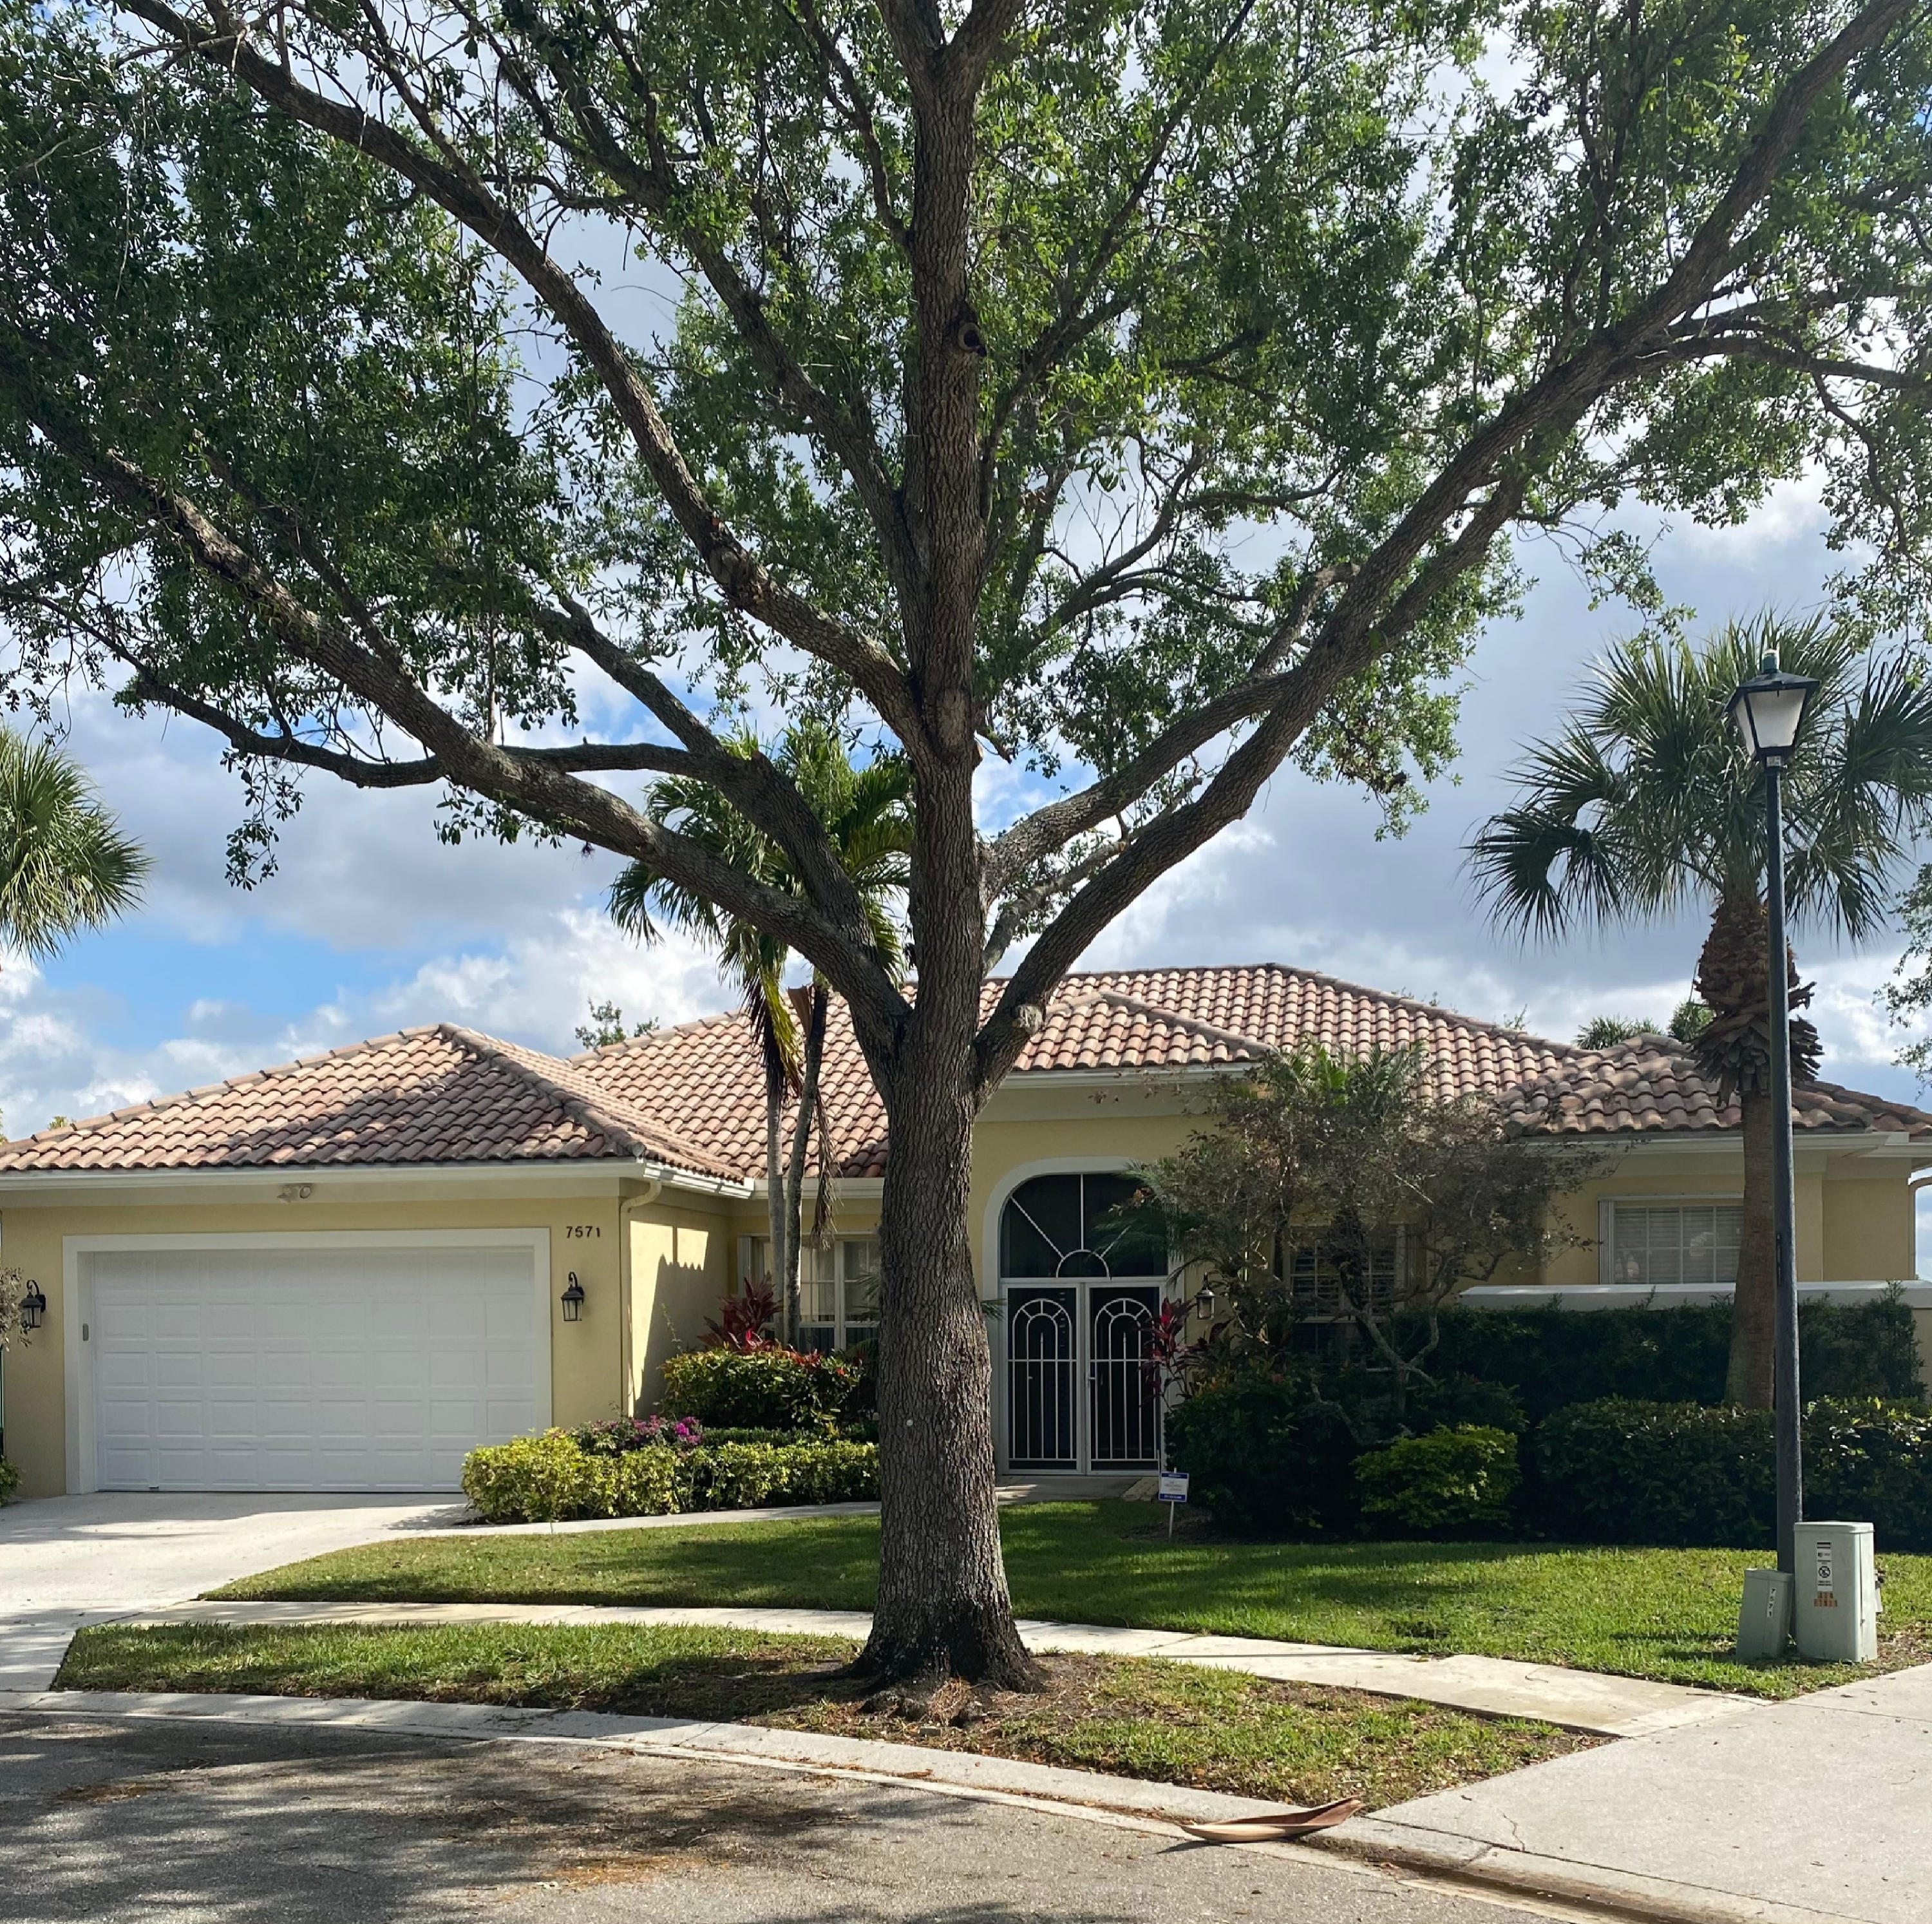 7571  Red River Road  For Sale 10701615, FL